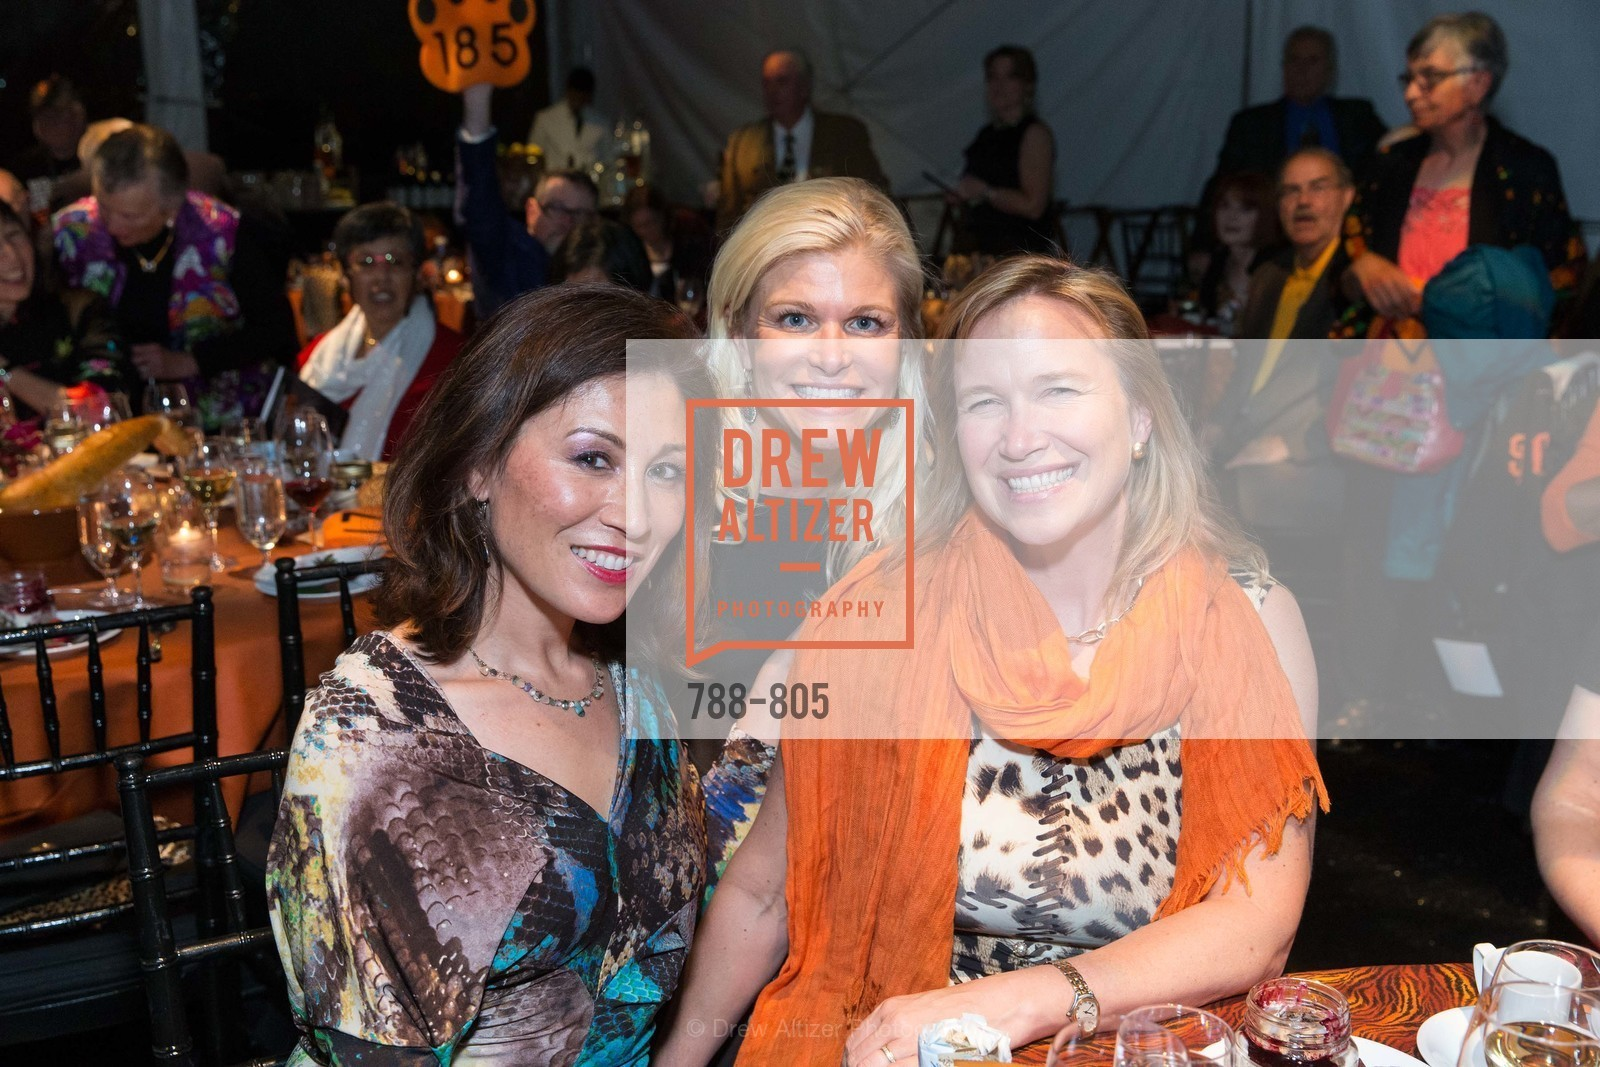 Michelle Pender, Lori Shigekane, Charley Zeches, ZOOFEST 2015, US, April 26th, 2015,Drew Altizer, Drew Altizer Photography, full-service agency, private events, San Francisco photographer, photographer california